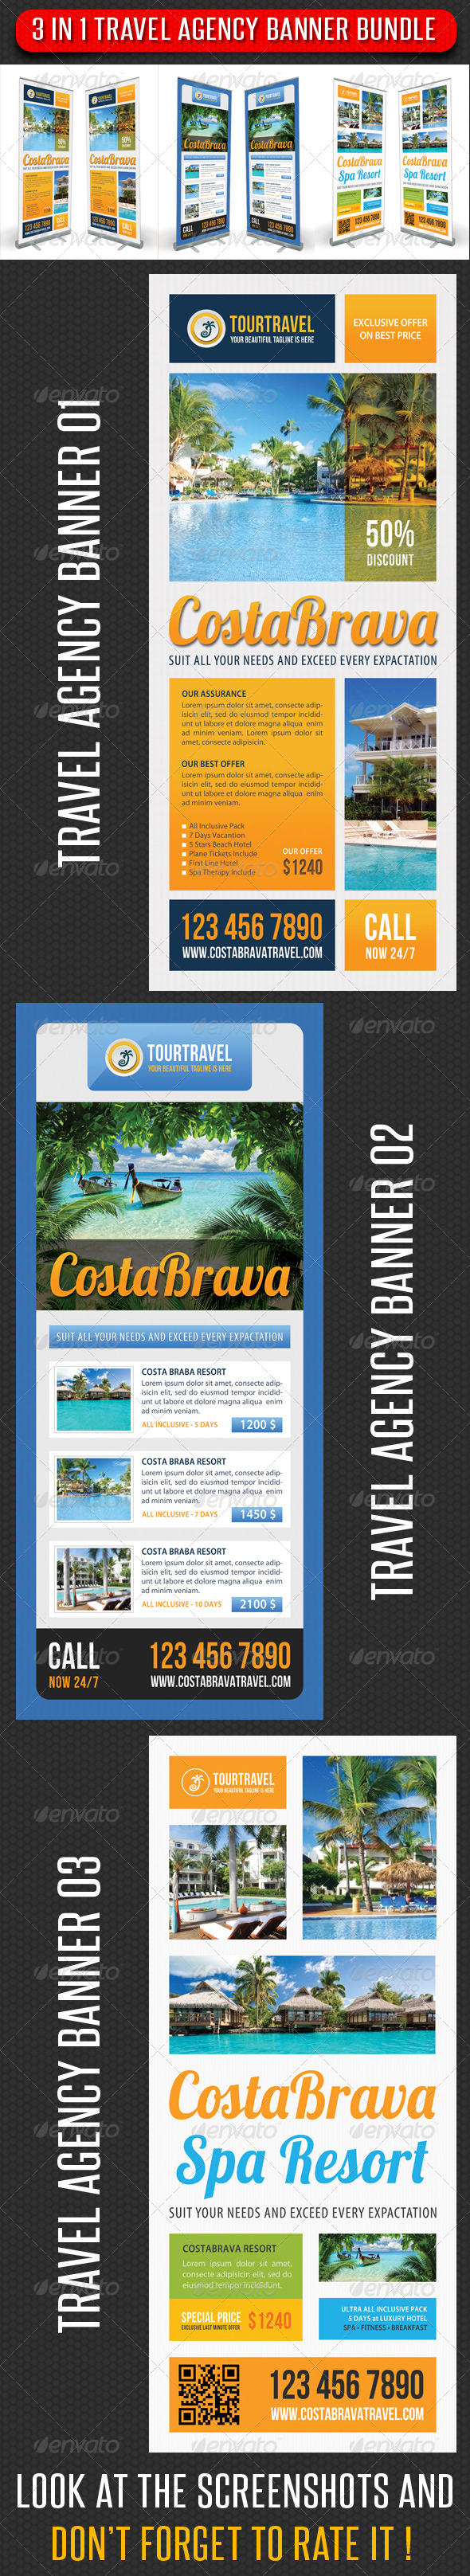 GraphicRiver 3 in 1 Travel Agency Banner Bundle 02 7311040